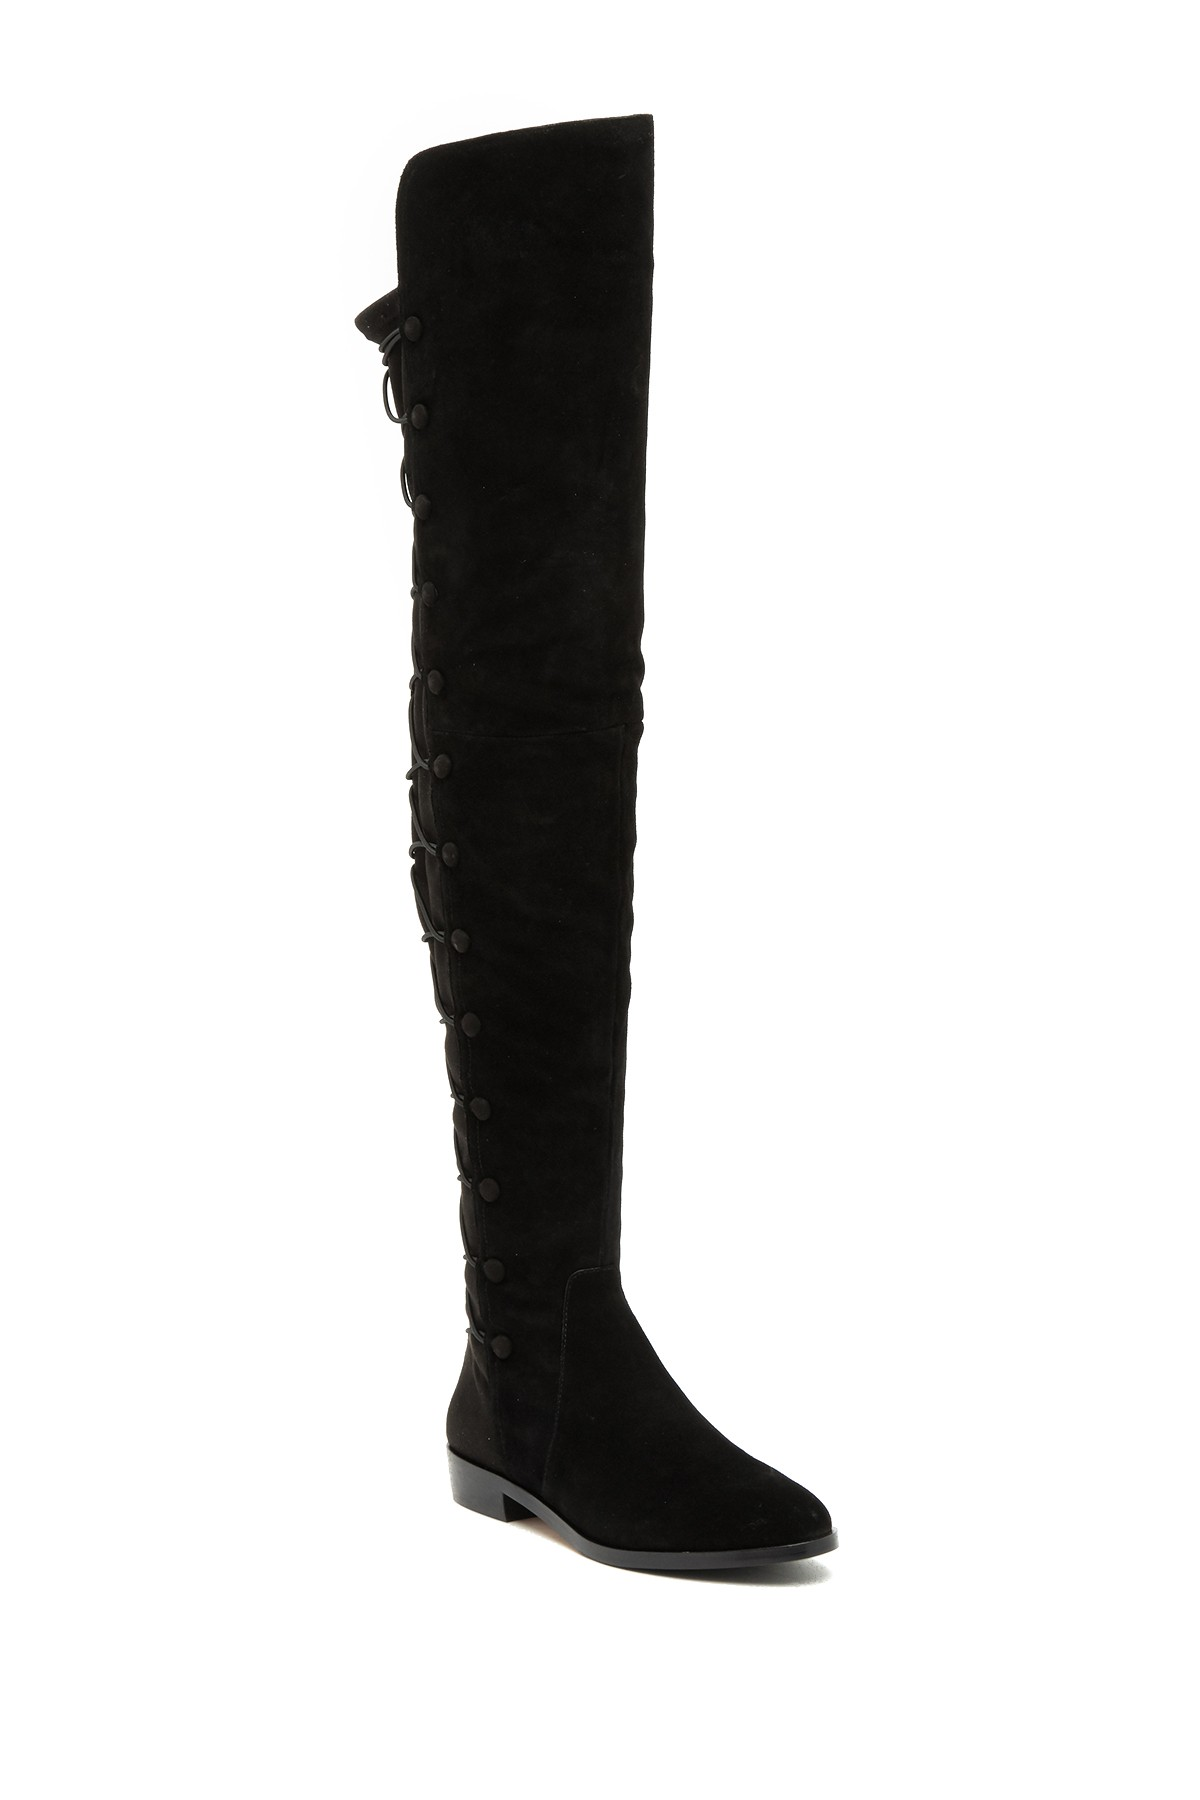 f0d38e871ca Vince Camuto Coatia Over The Knee Suede Boots Black 6.5 M ...